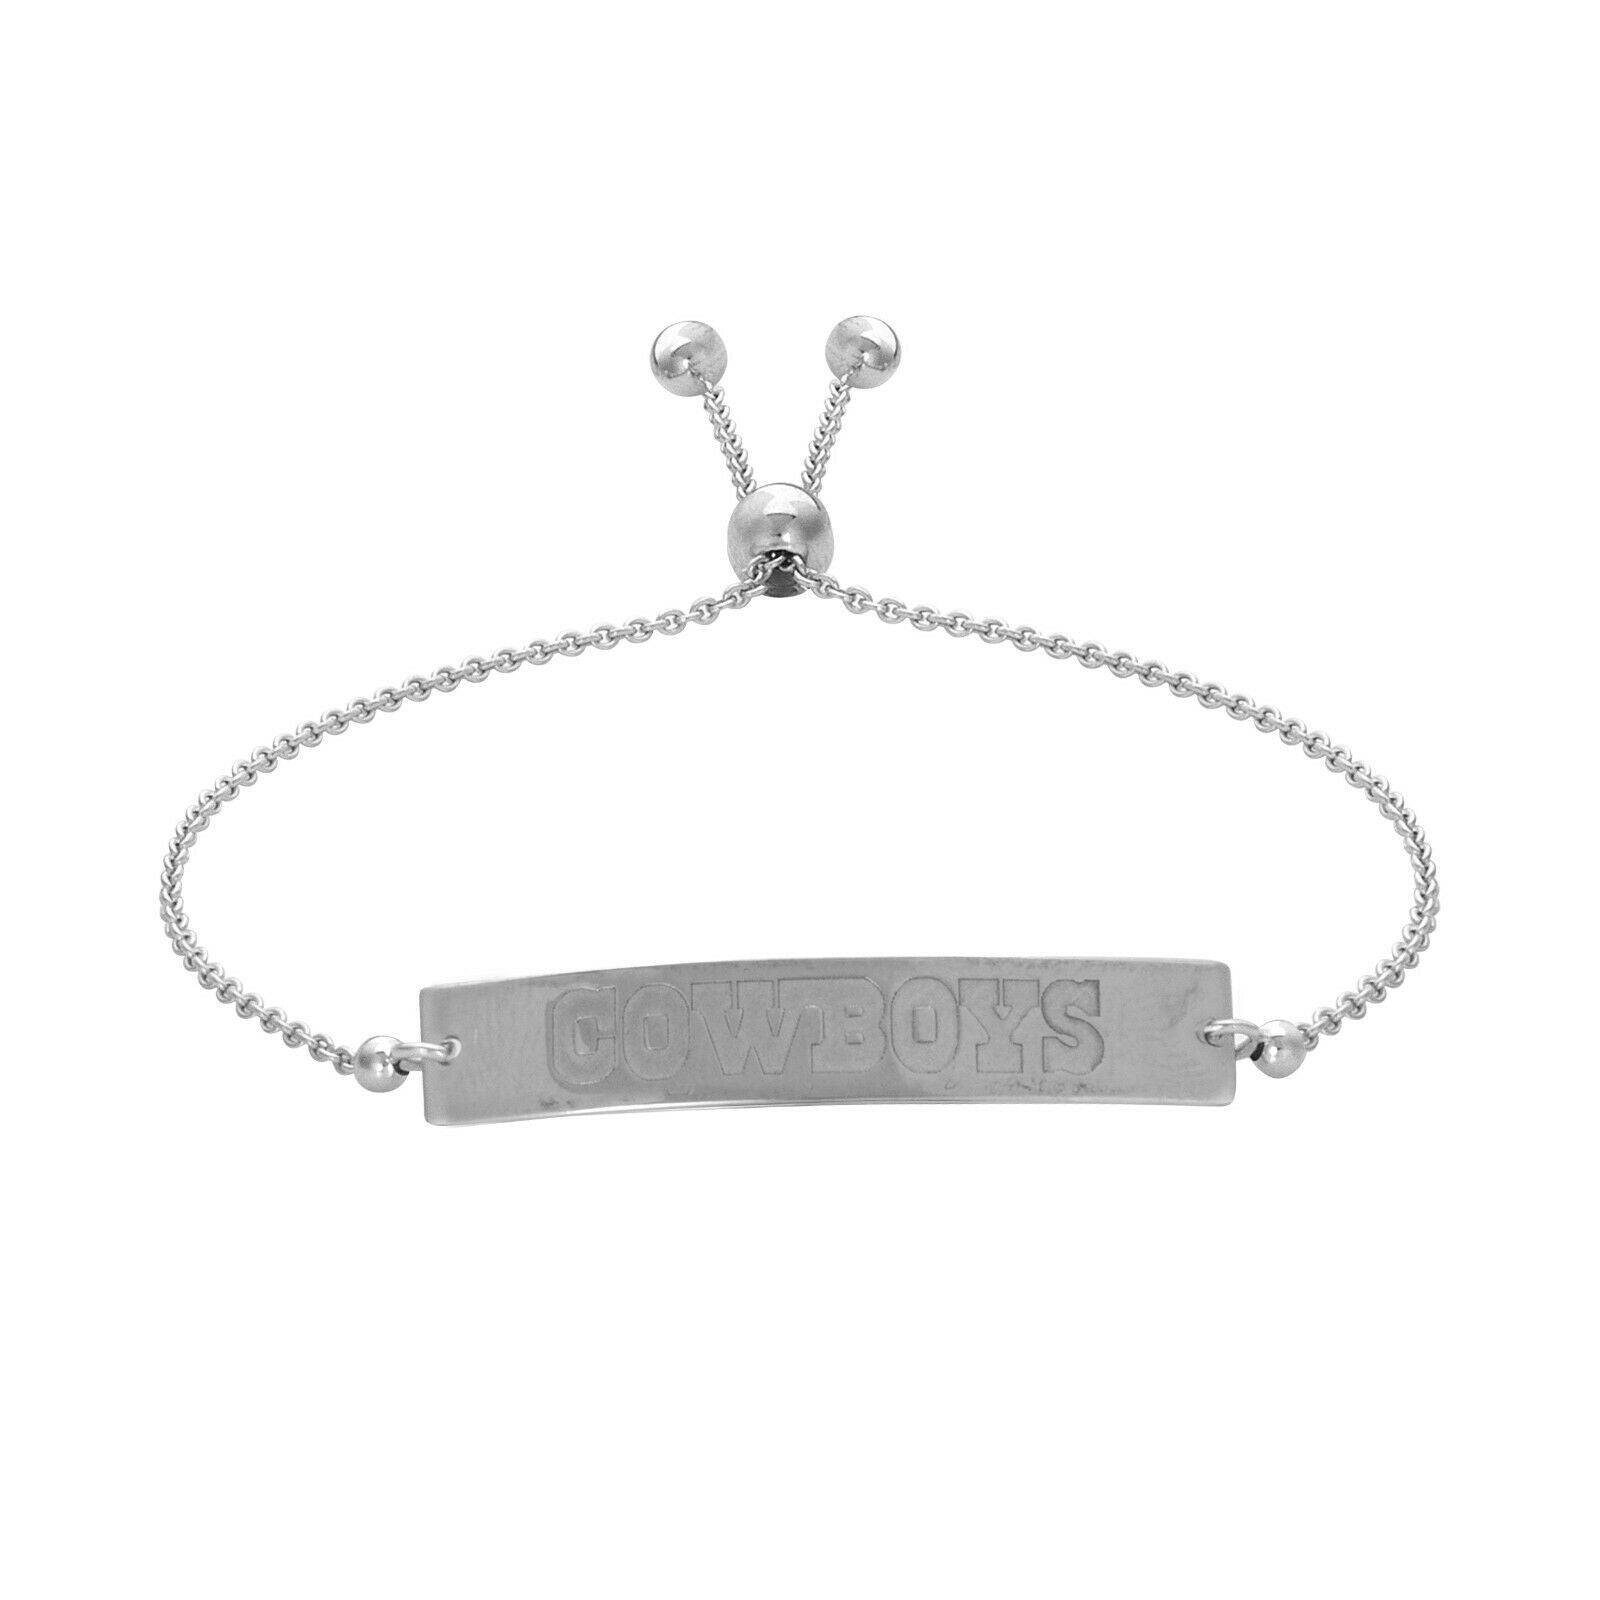 Dallas Cowboys Engraved Bar Sterling Silver Bracelet -Official Licensed NFL